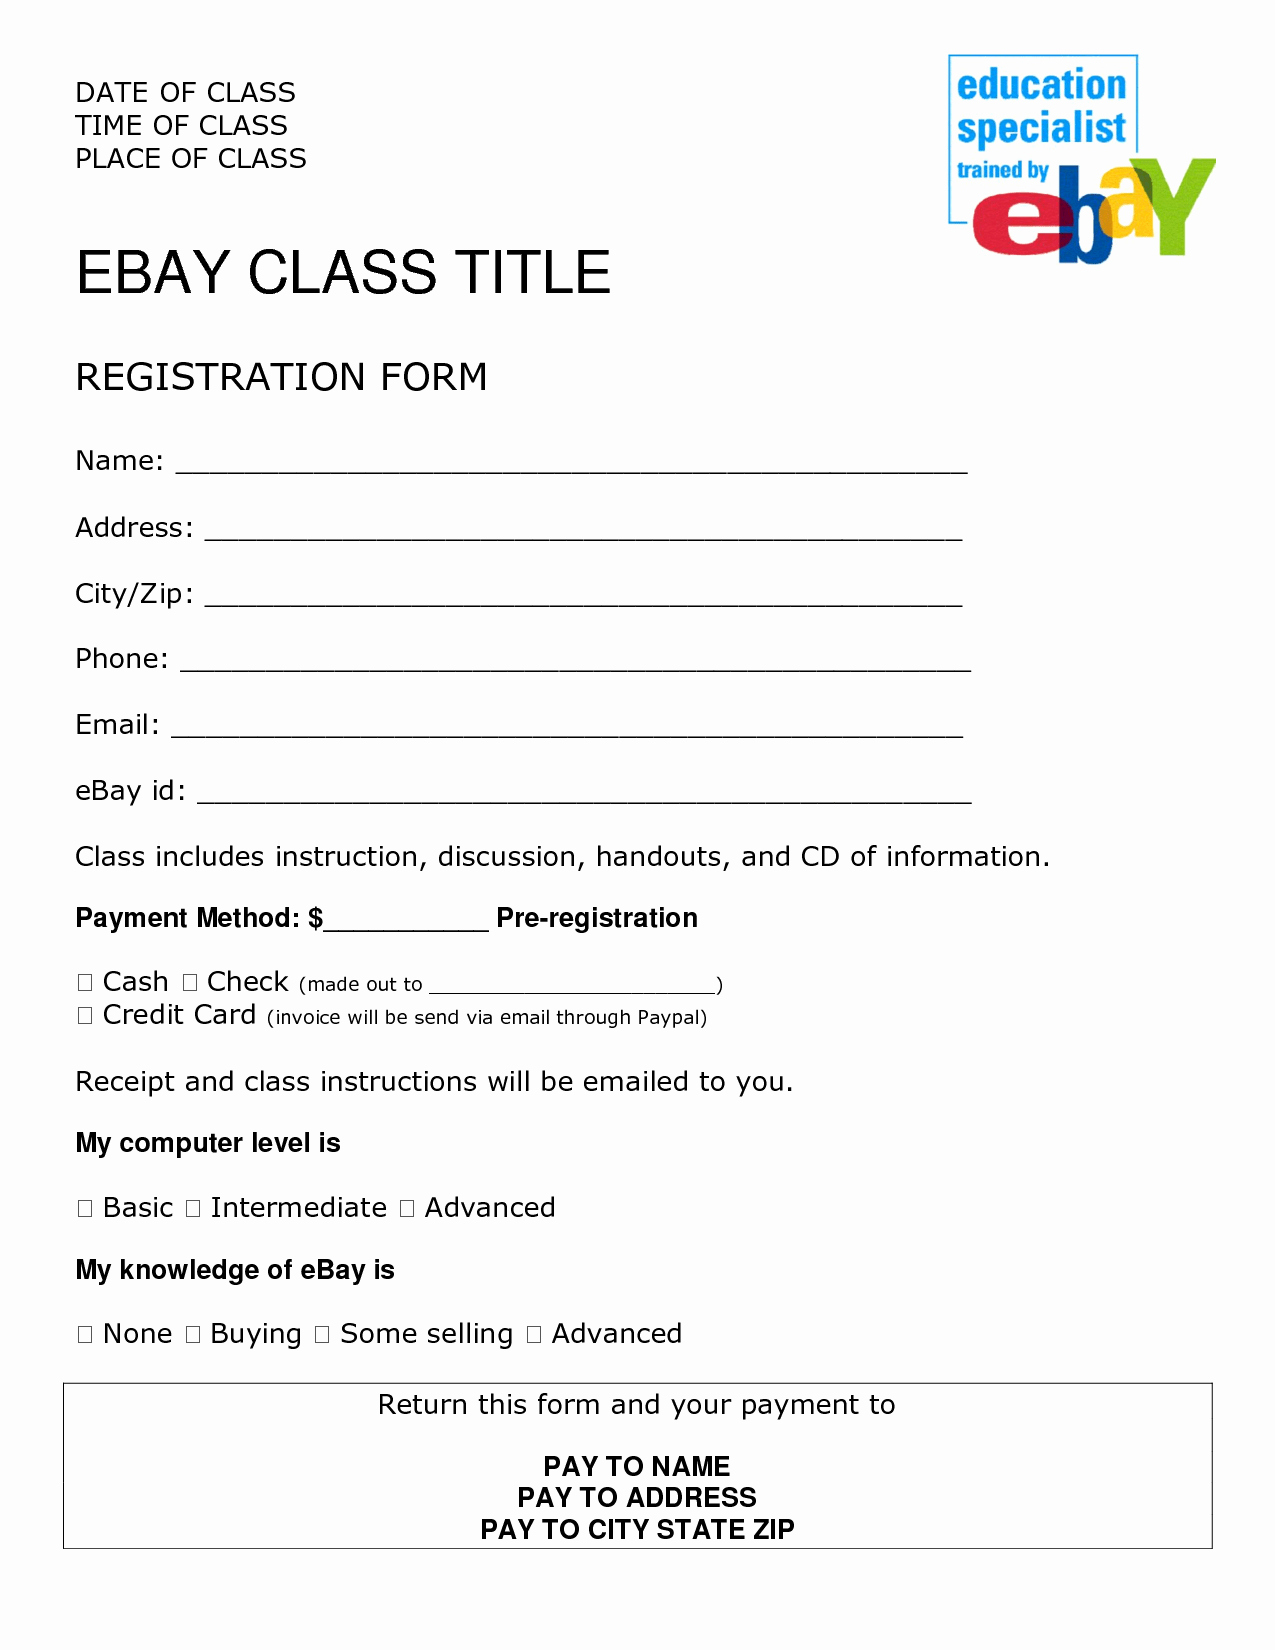 Sign Up form Template Word Portablegasgrillweber